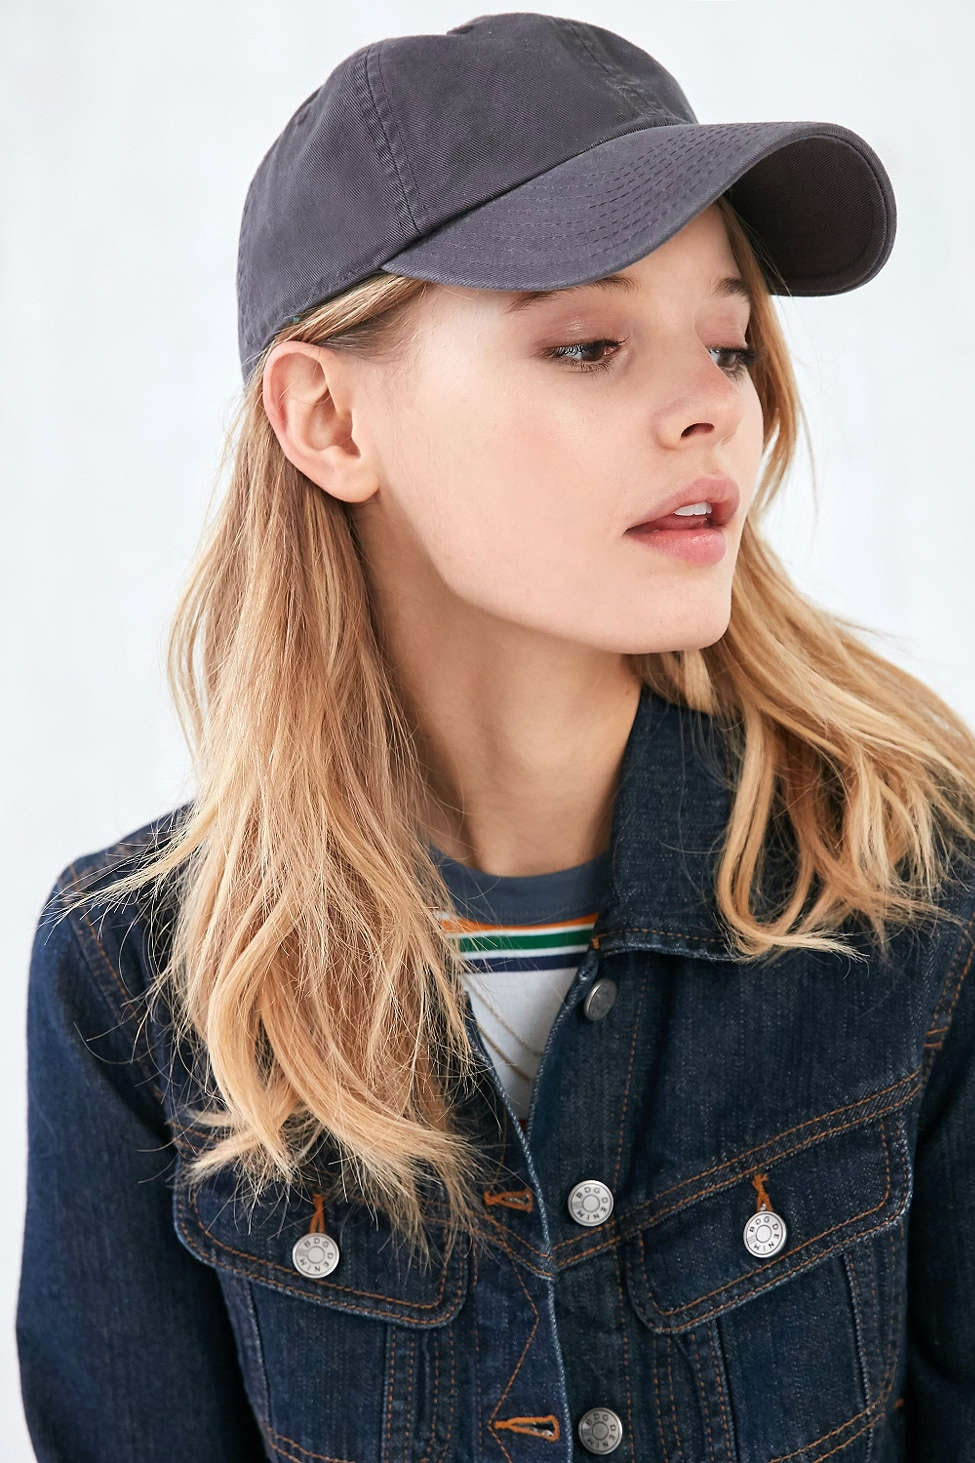 11 Chic Baseball Caps That ll Amp Up Your Athleisure Game — PHOTOS d9a103917e8